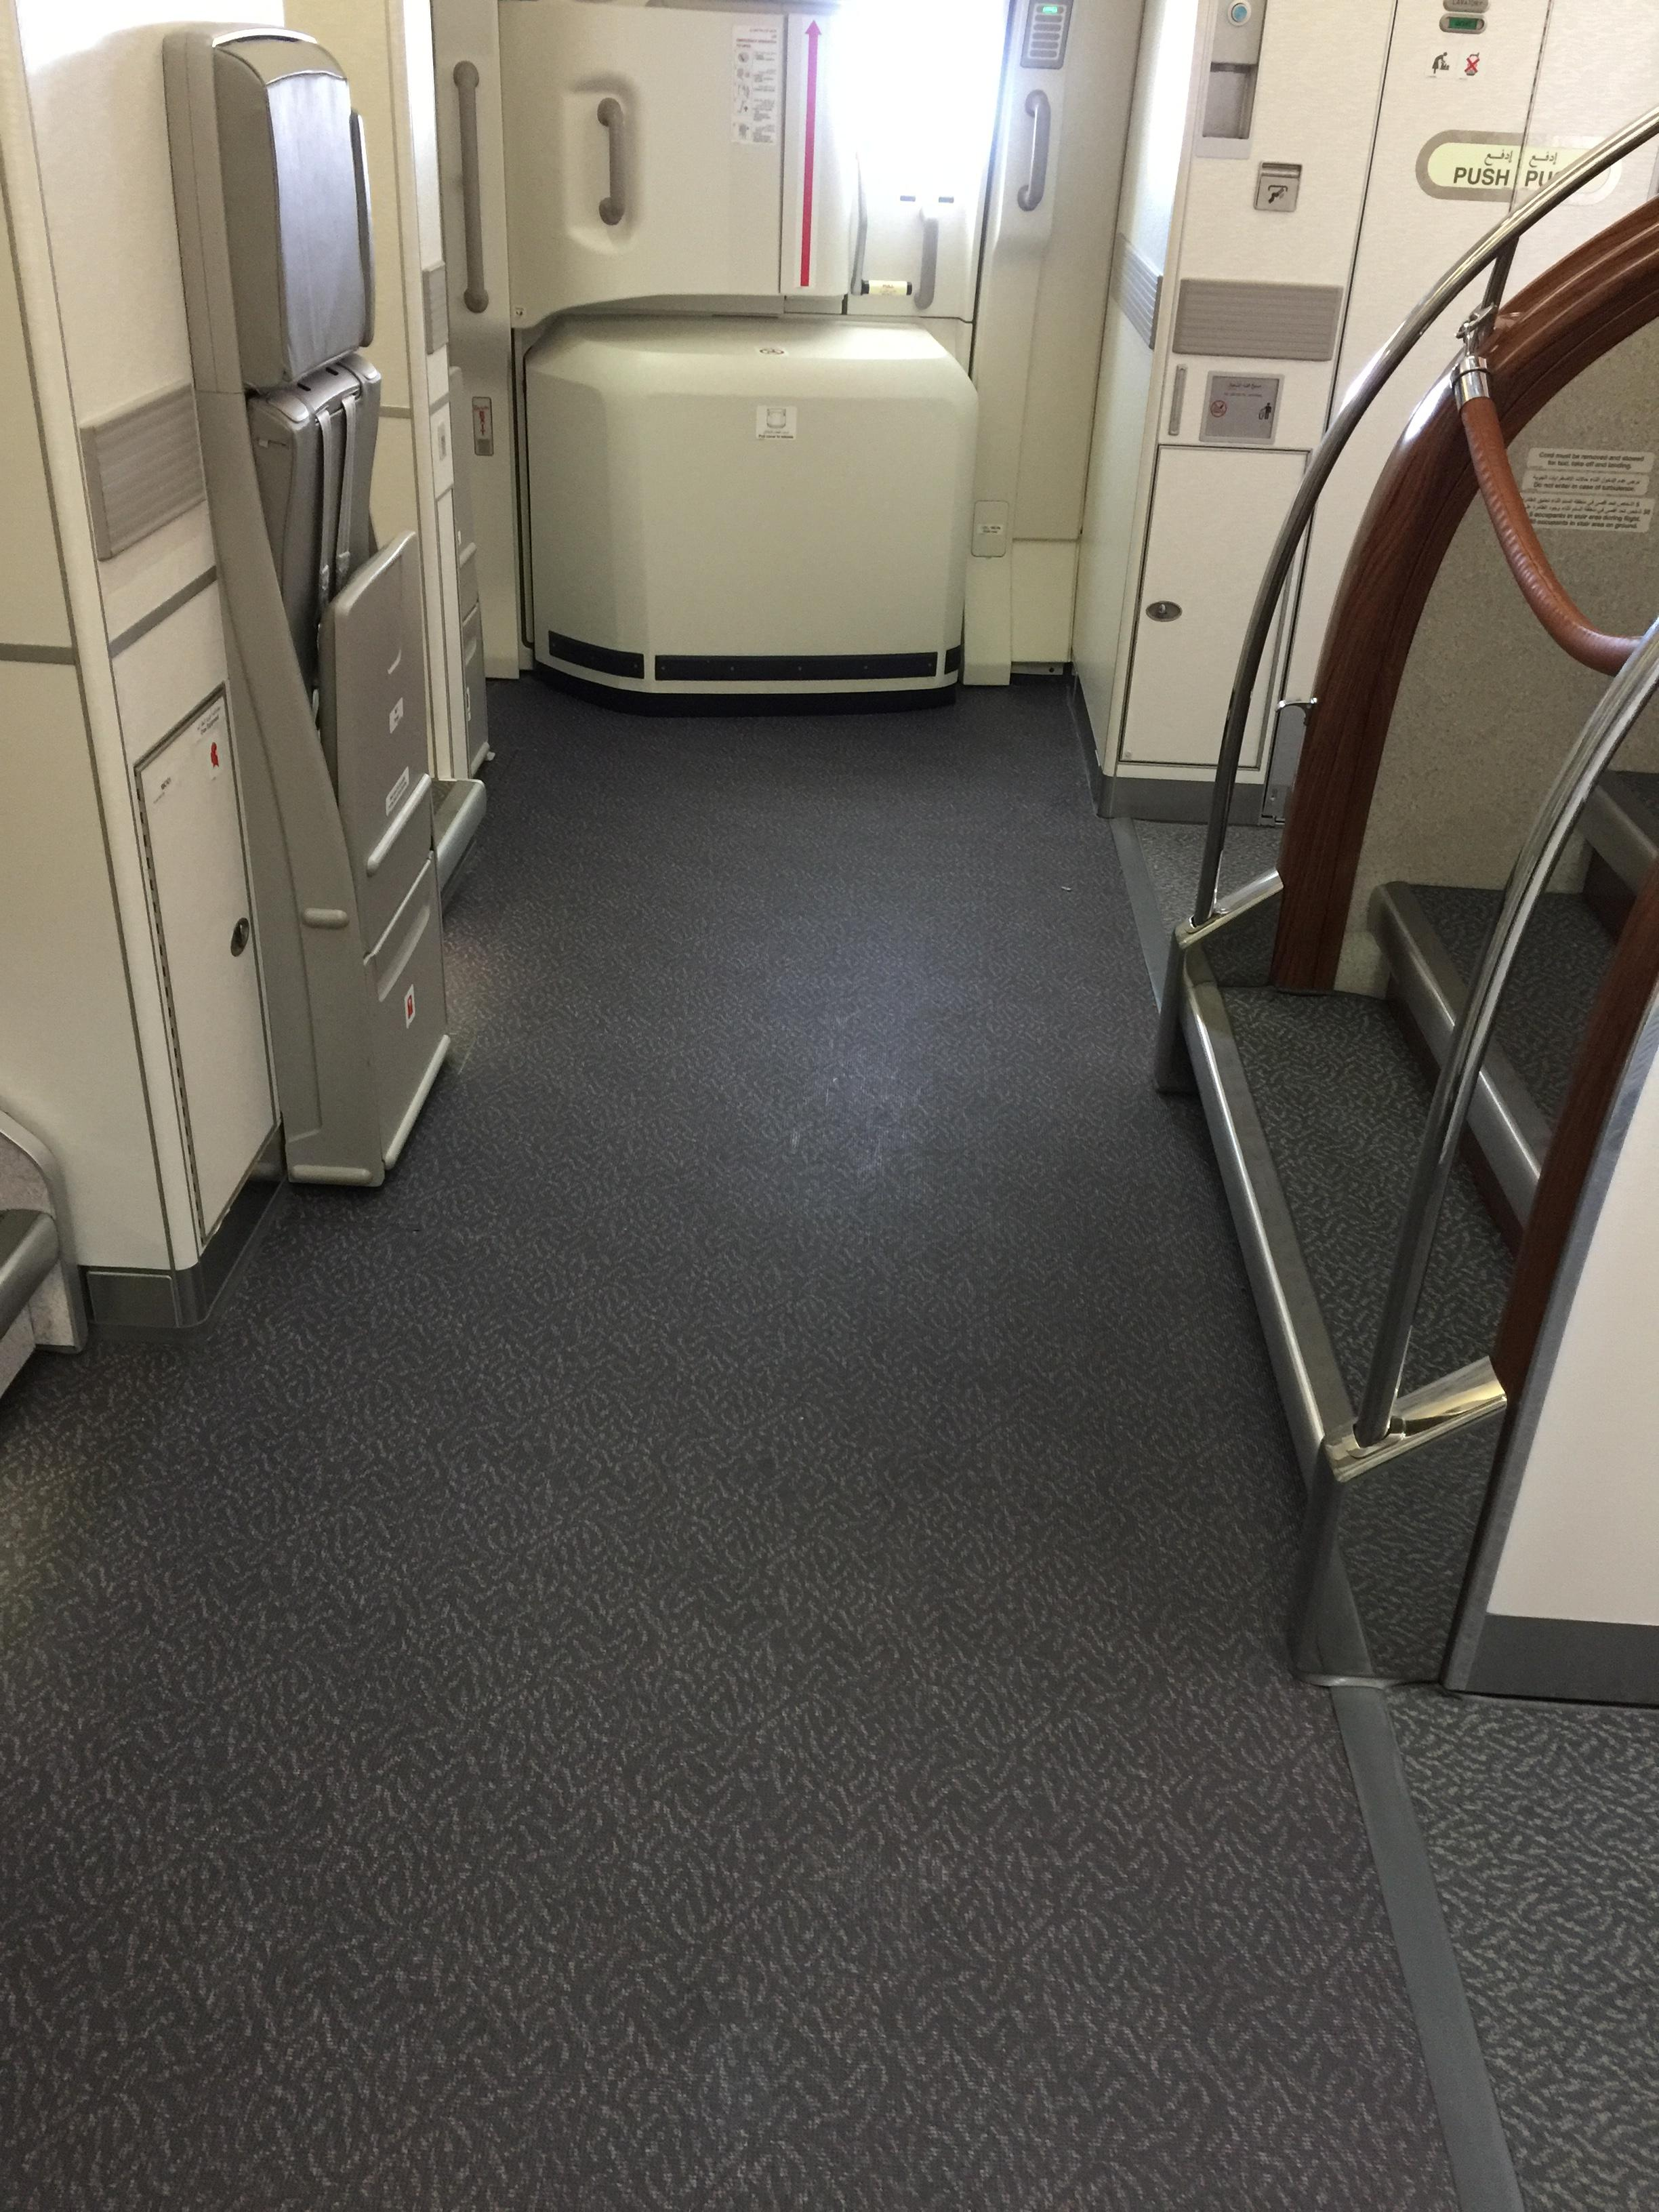 Walking space on the plane.jpg